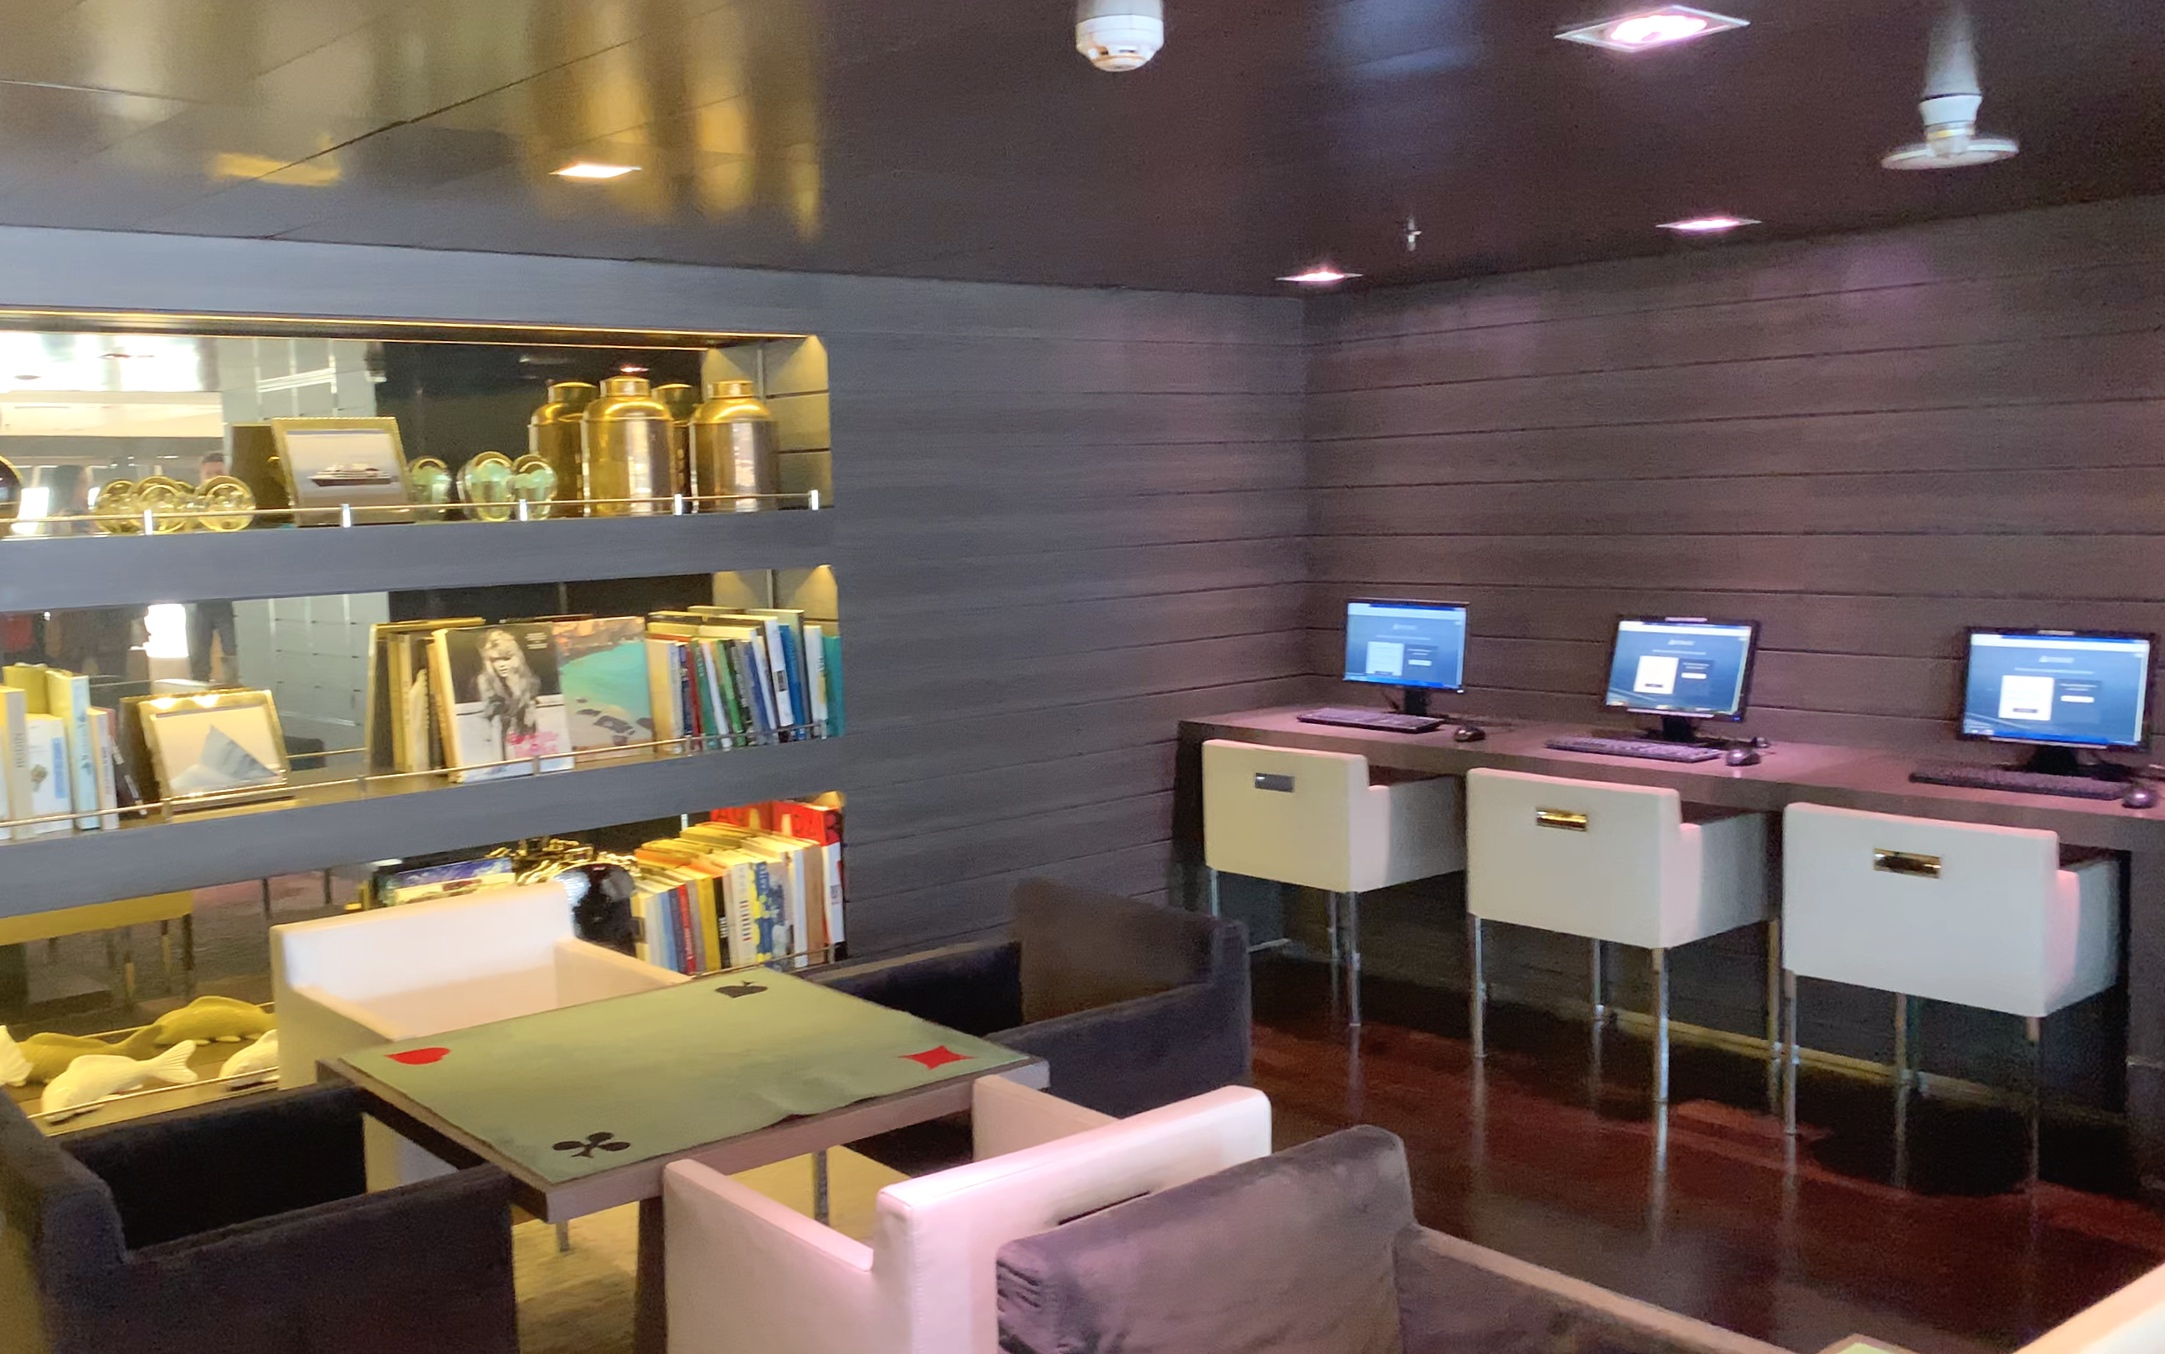 The IT area in the library corner of the Observation bar.